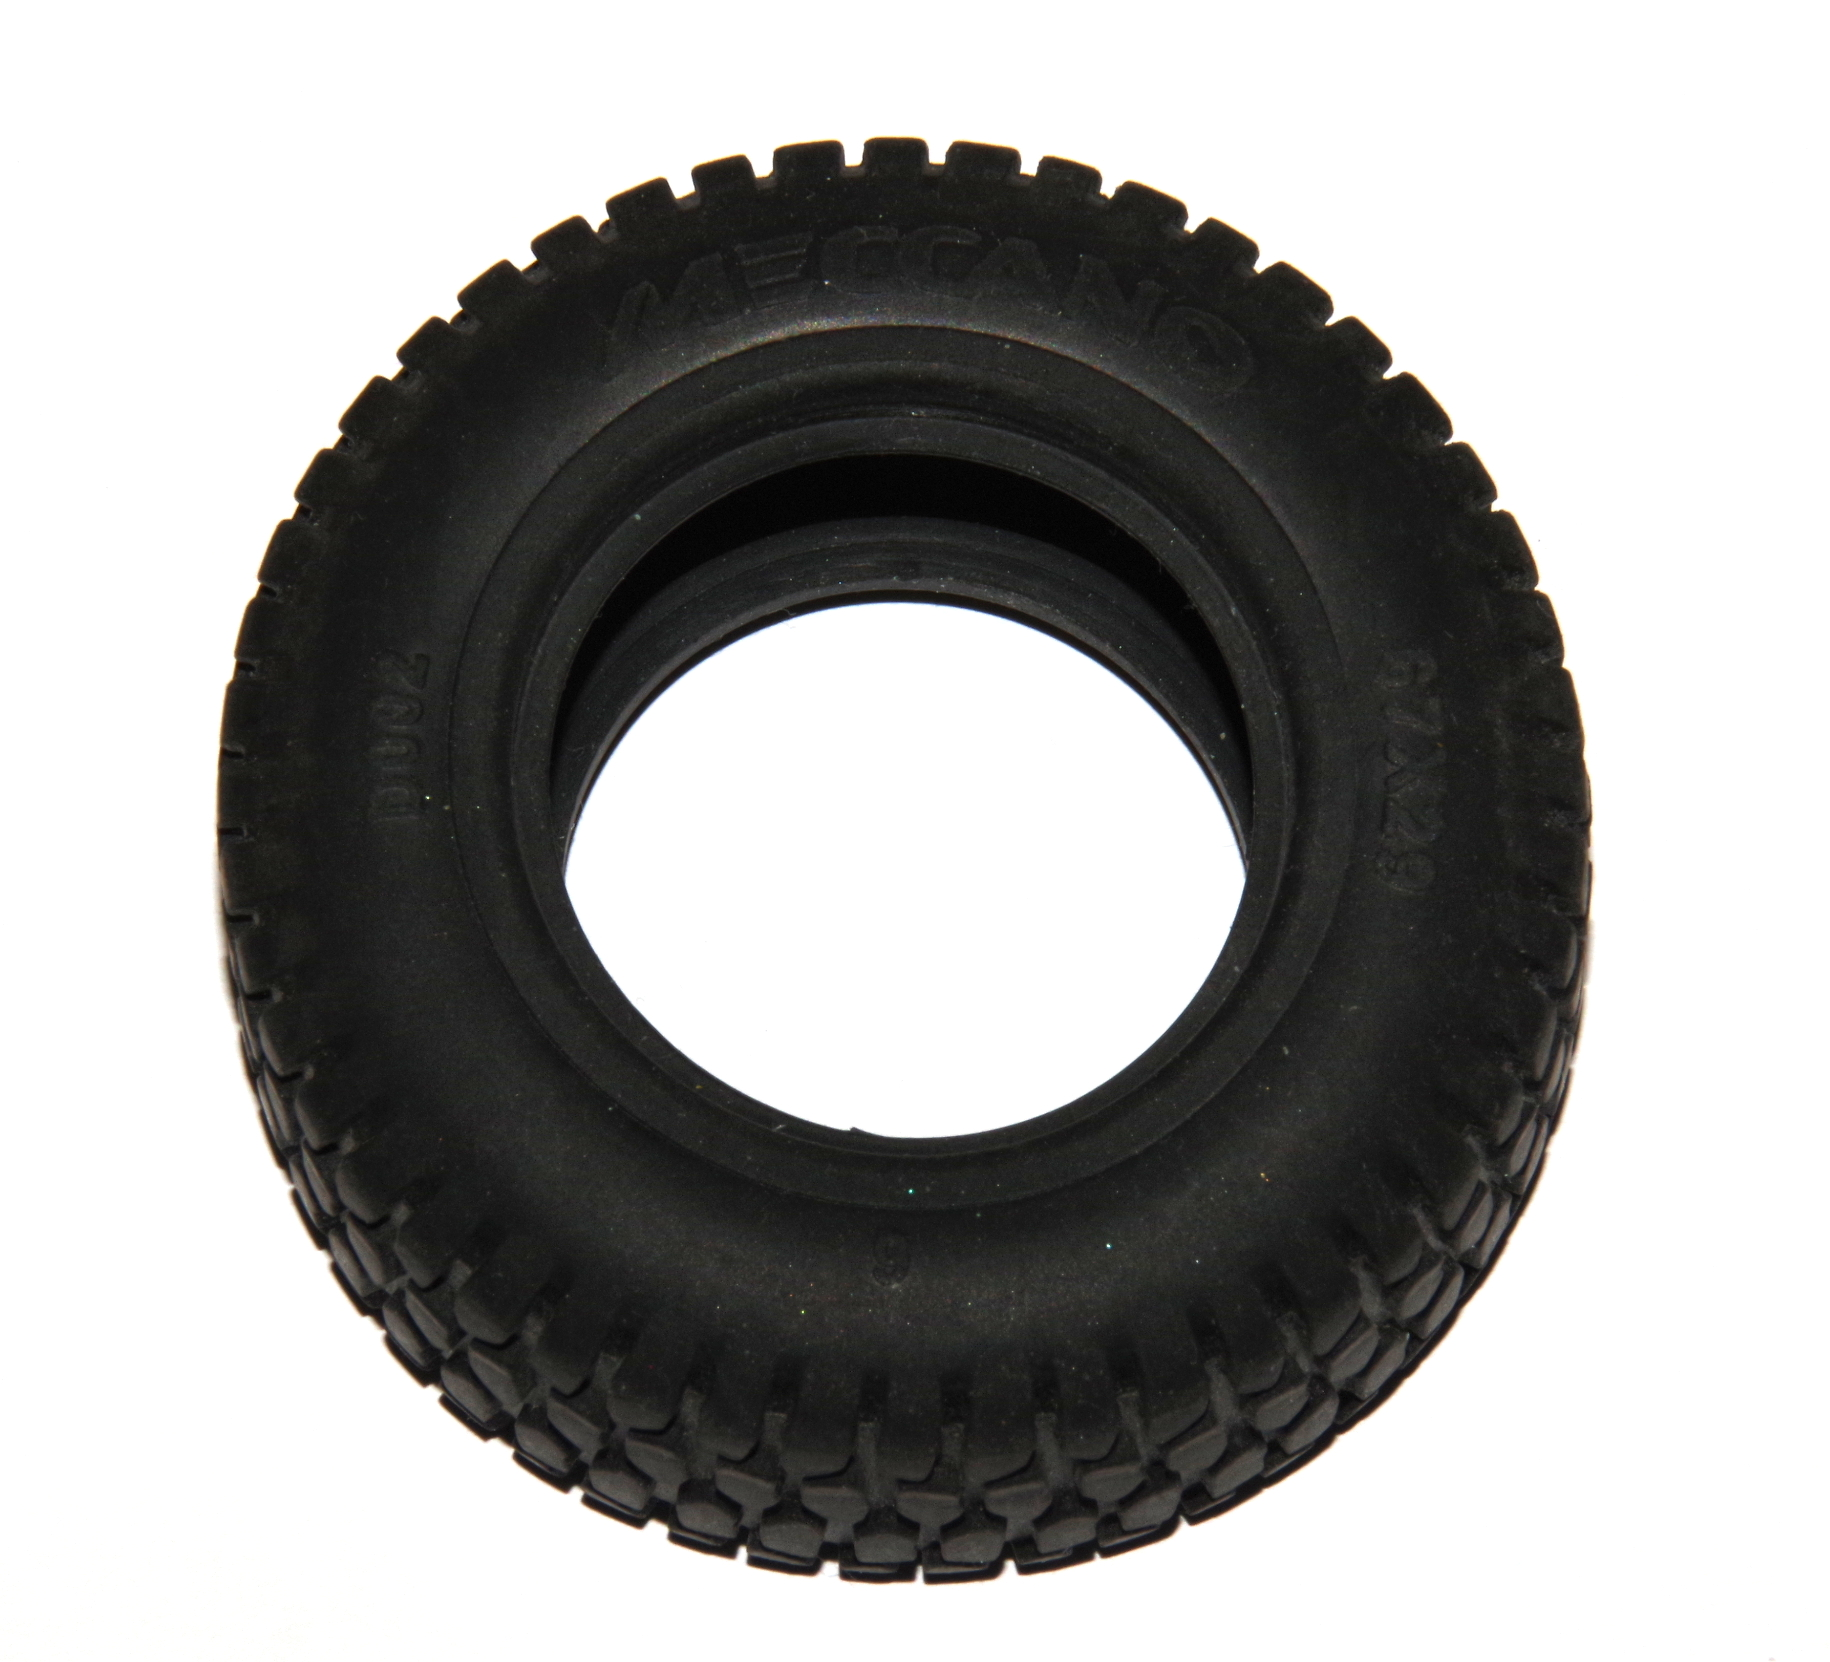 D002 Tyre Hollow 2¾'' x 1 1/8'' Black Original